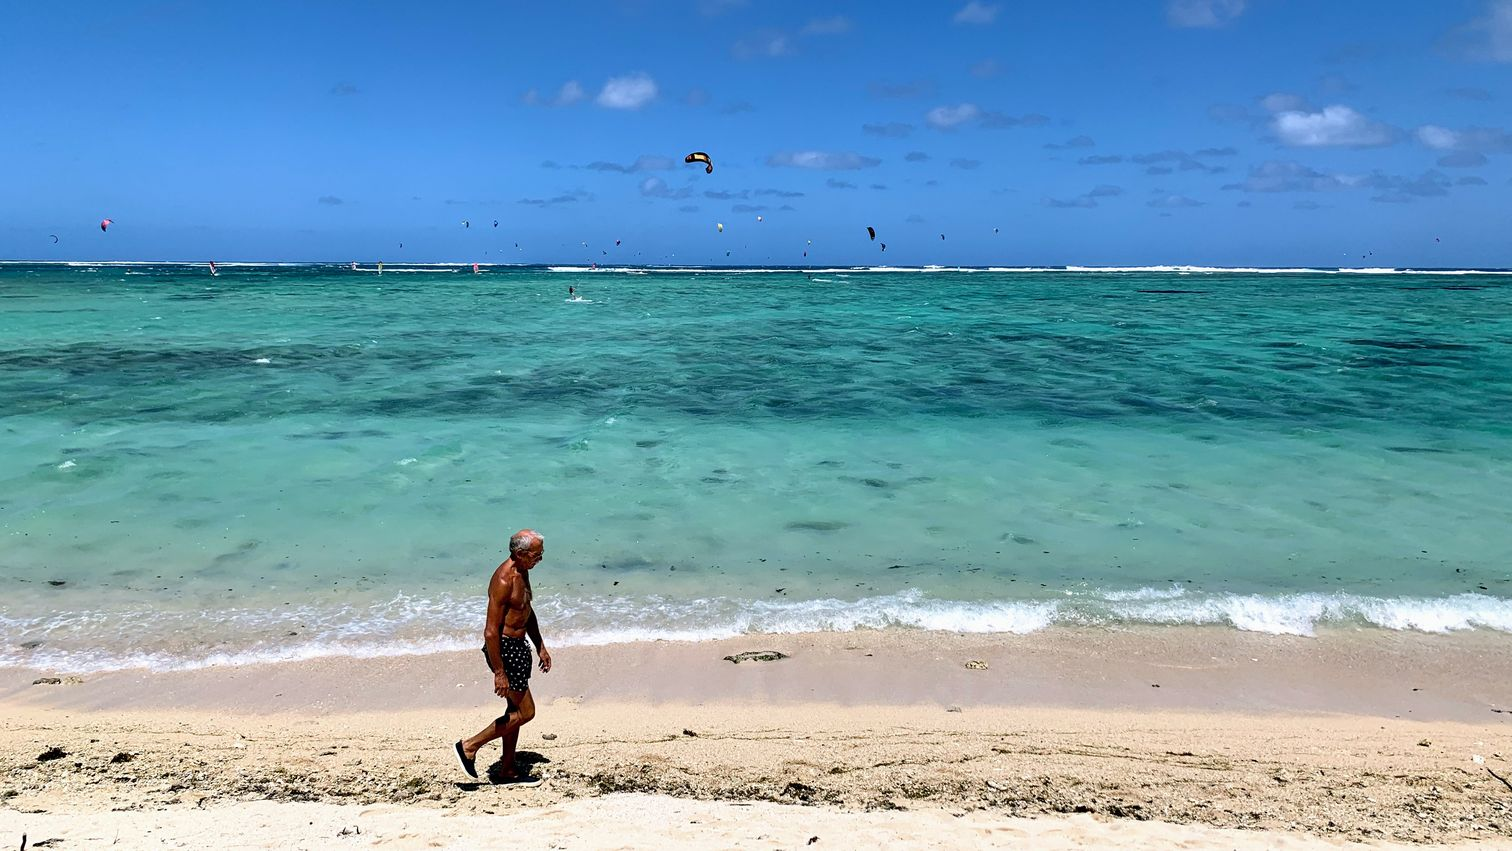 A man walking across the beach at Le Morne